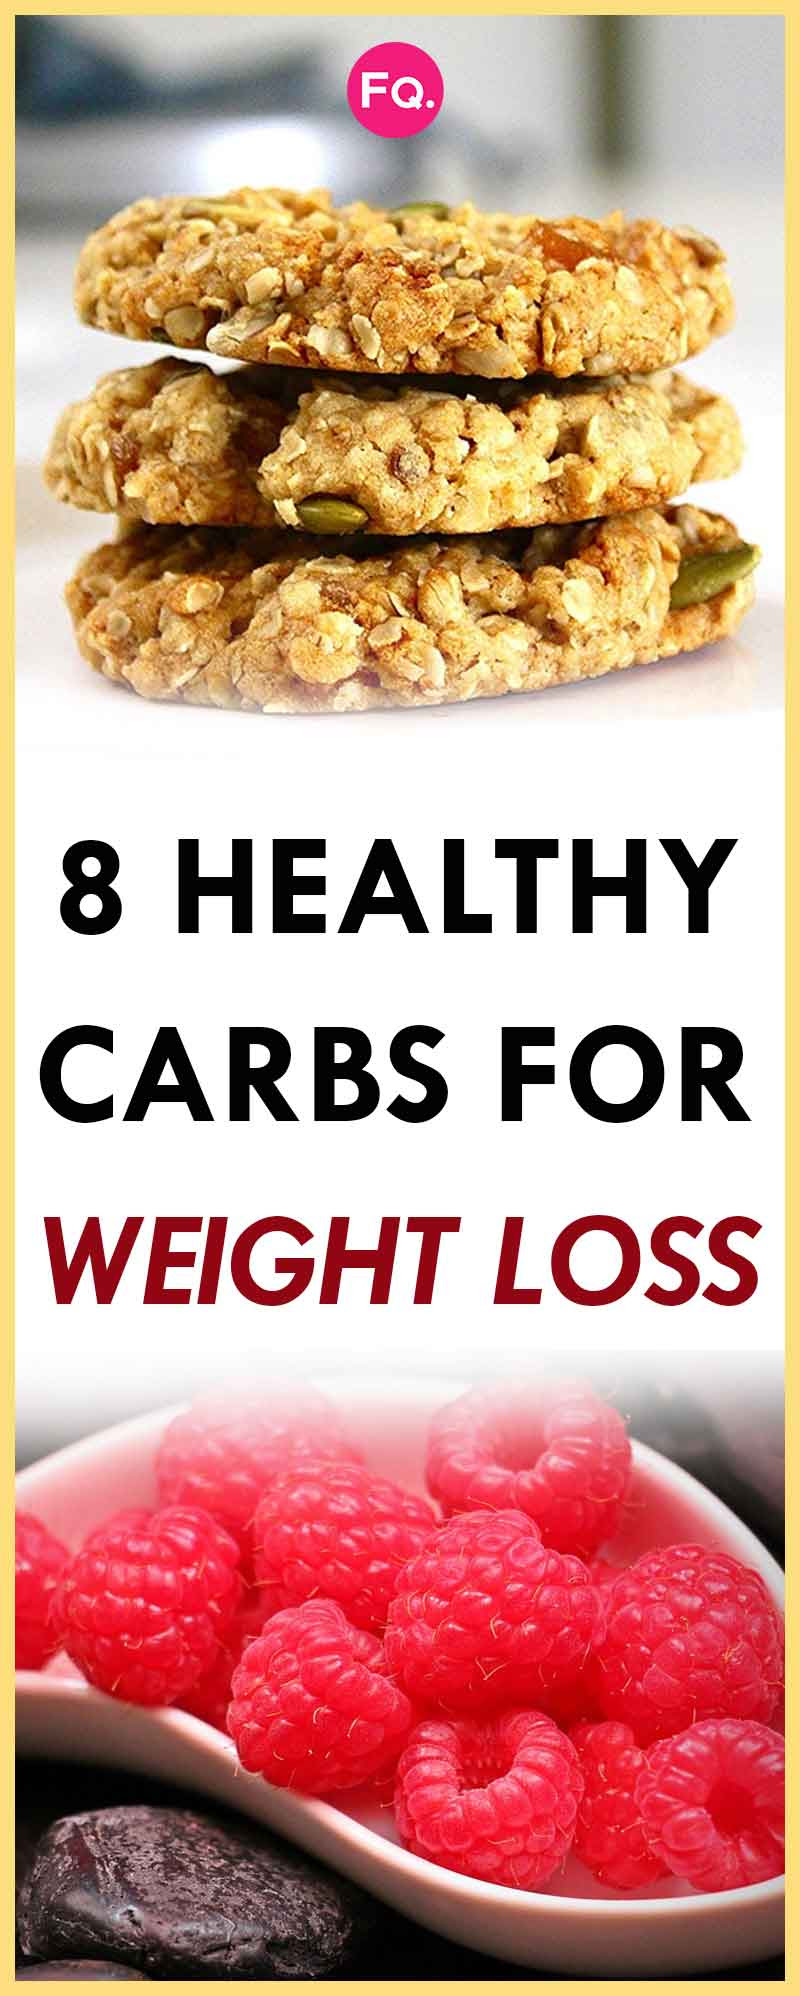 8 Healthy Carbs For Weight Loss (Uncover Your Abs) - Femniqe